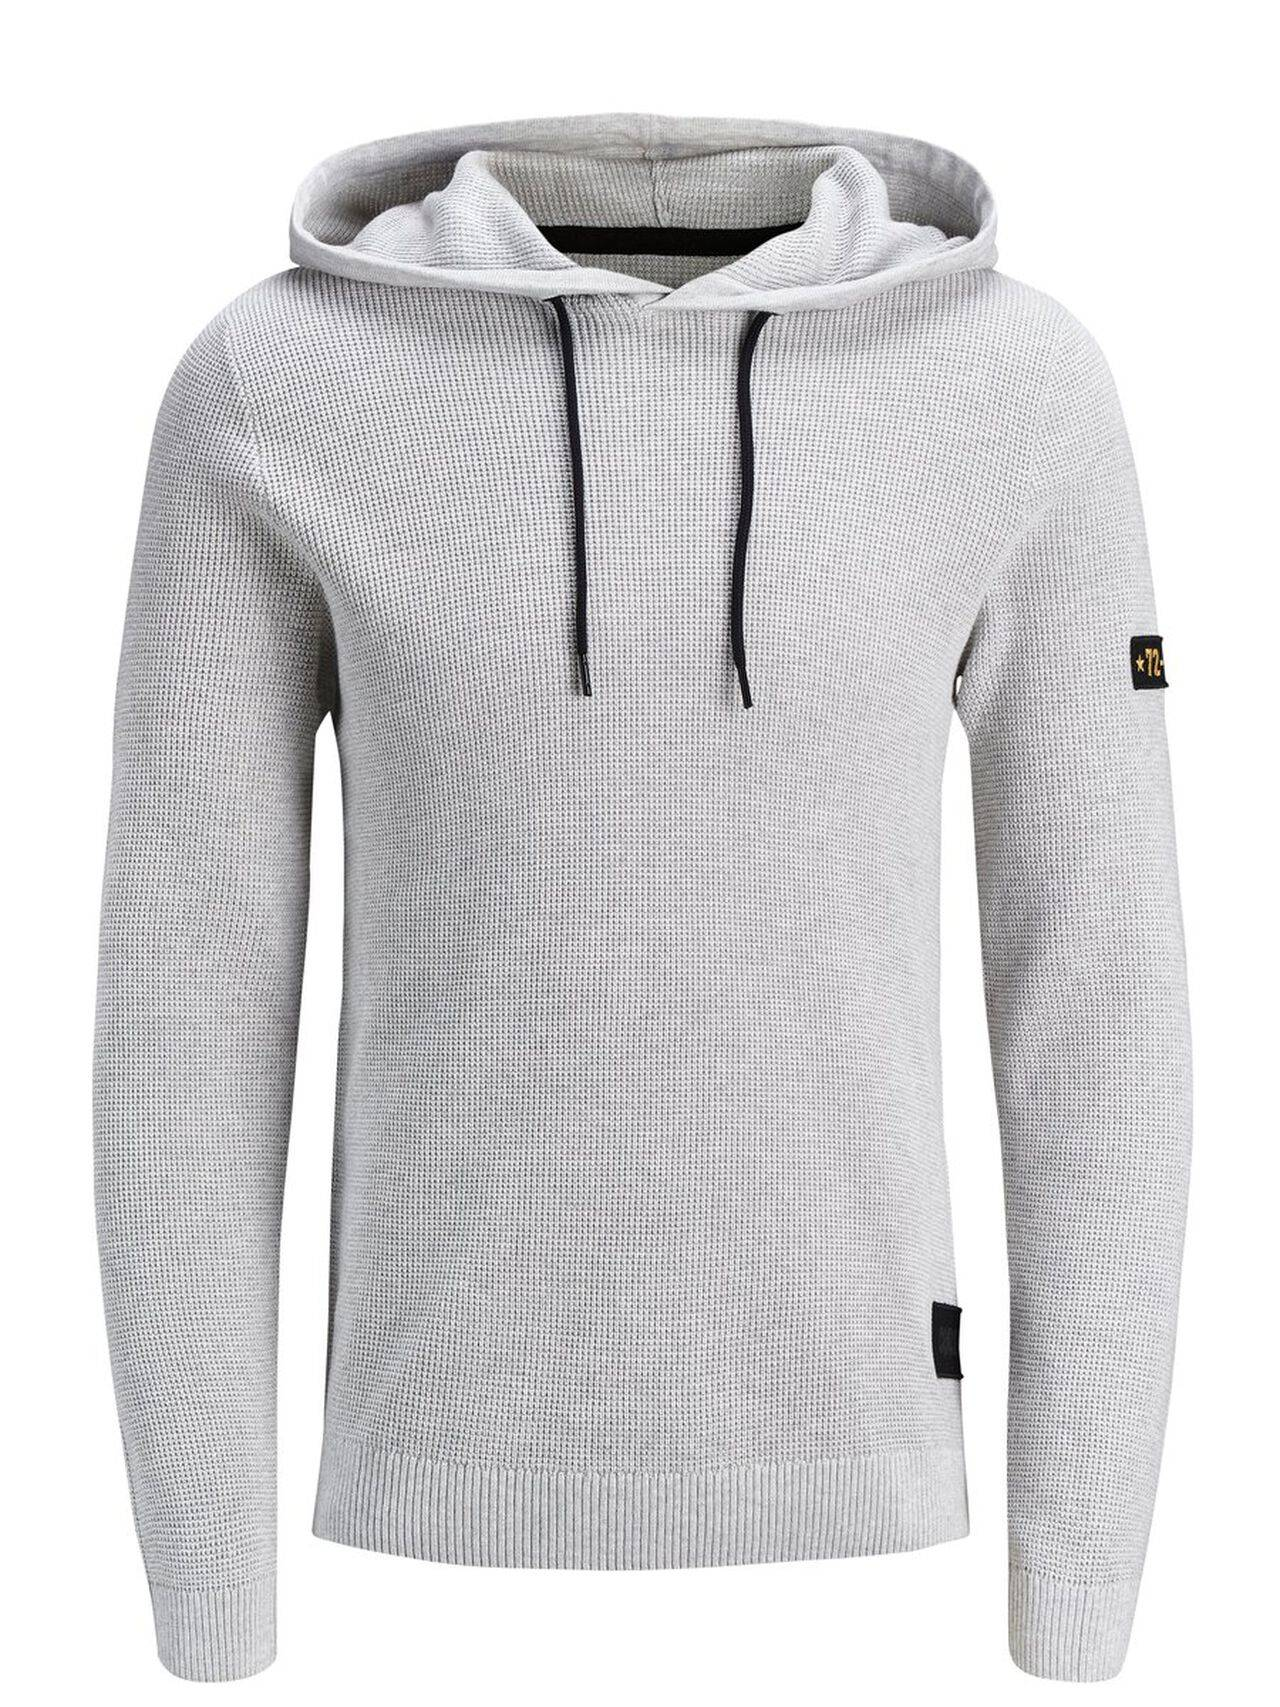 JACK & JONES Knitted Hoodie Men Grey WhiteMelange